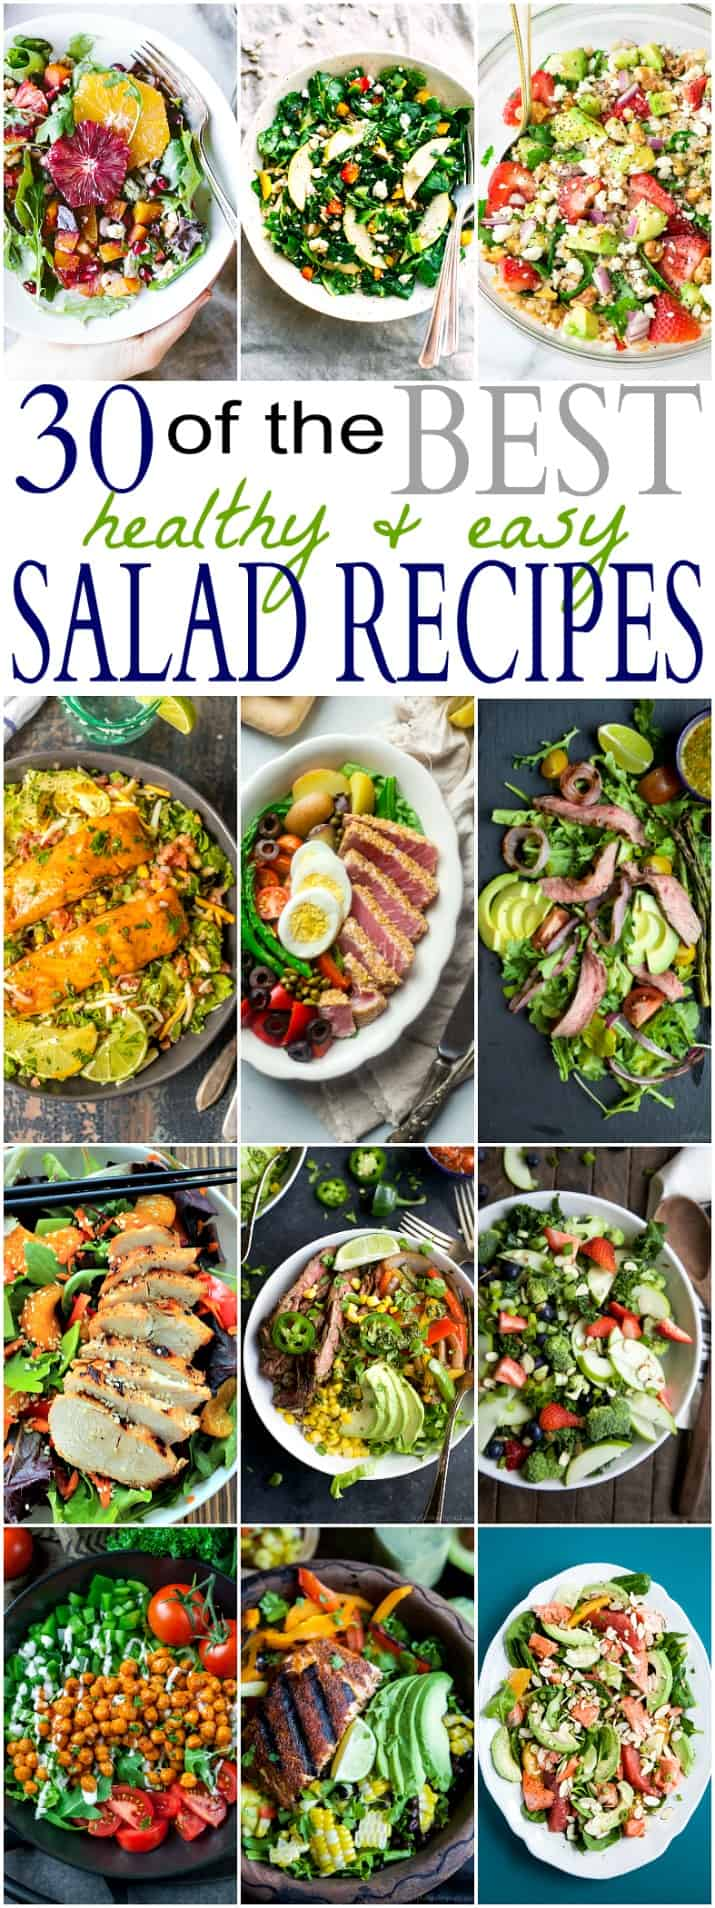 30 of the best healthy easy salad recipes easy healthy recipes 30 of the best healthy easy salad recipes out there easy fresh forumfinder Images